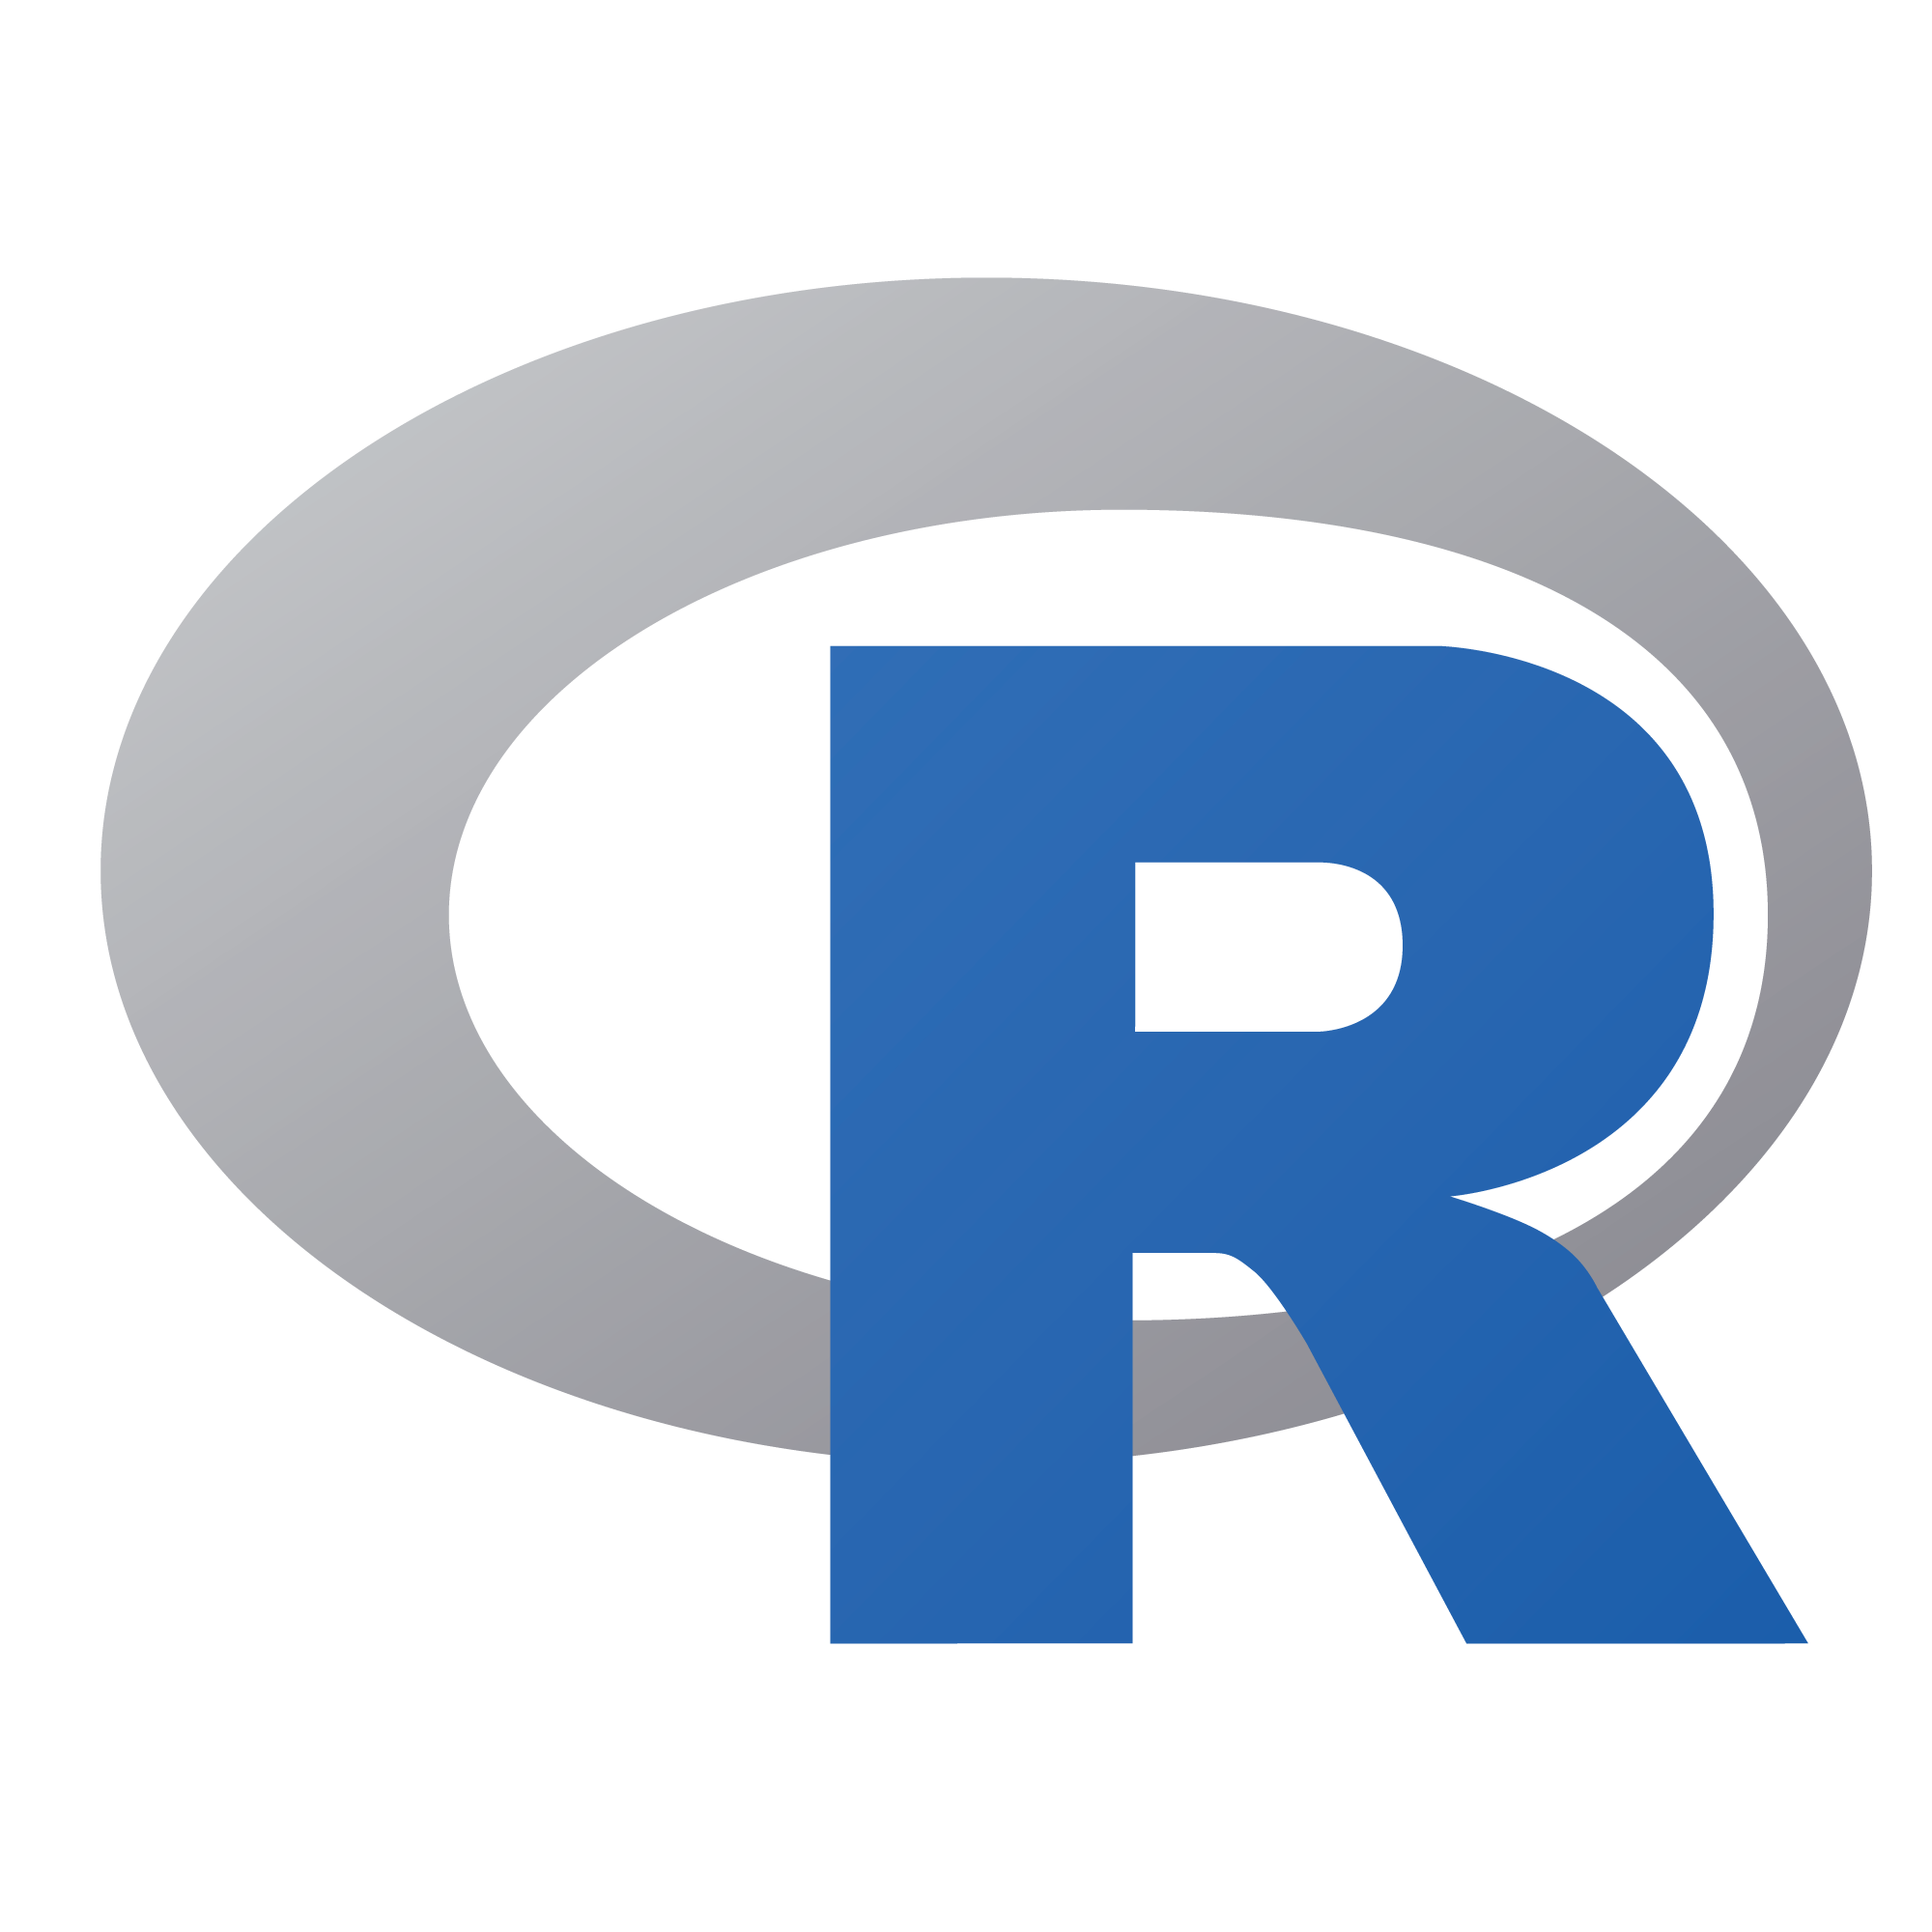 R and R Studio and data world